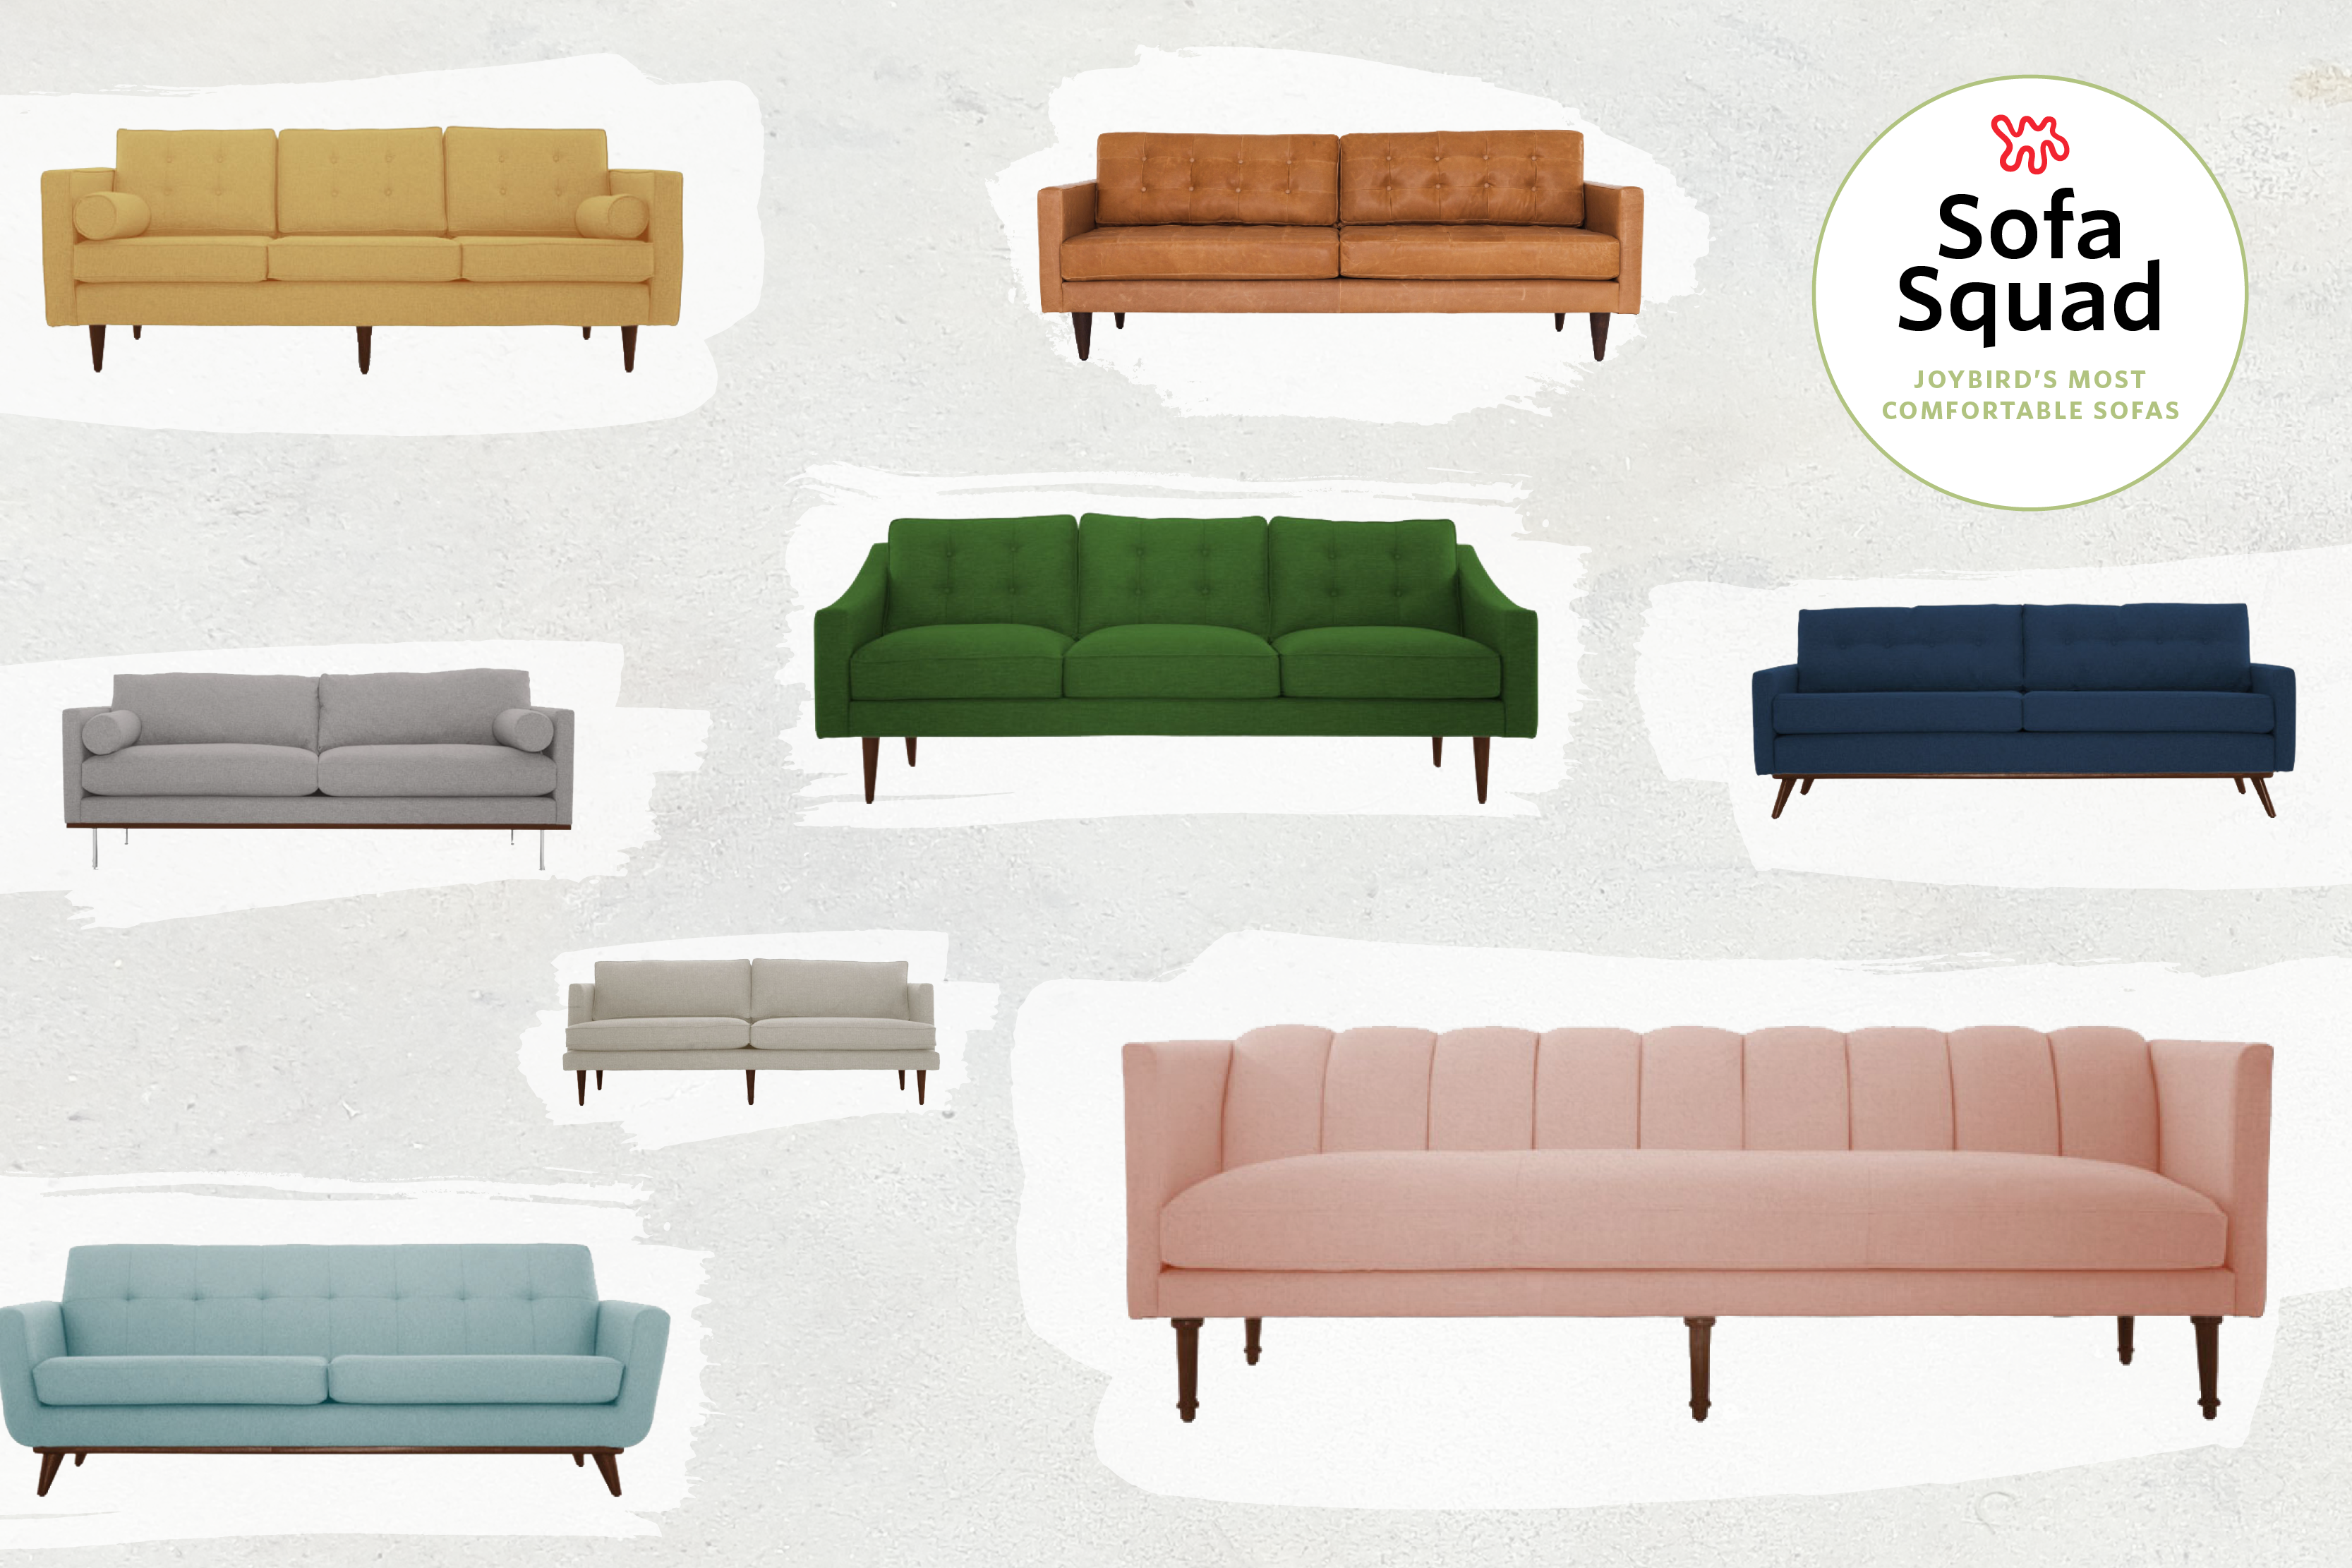 Reviewed the most comfortable sofas at joybird the apartment therapy sofa squad